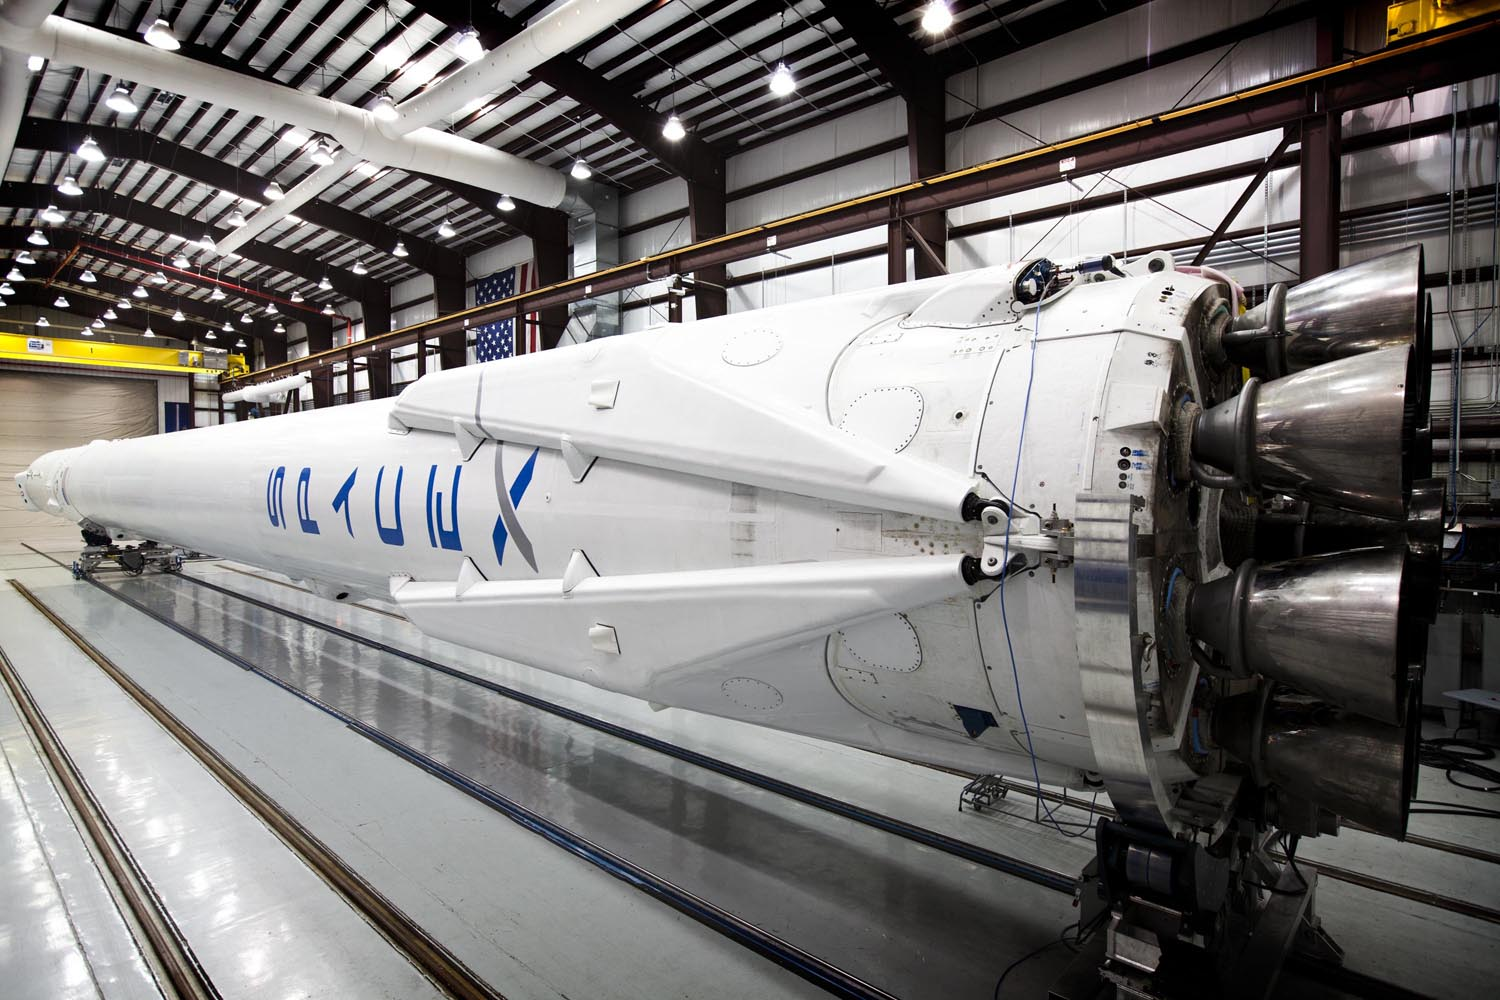 Falcon 9 awaits its upcoming launch in SpaceX's hangar with landing legs attached on March 12, 2014.